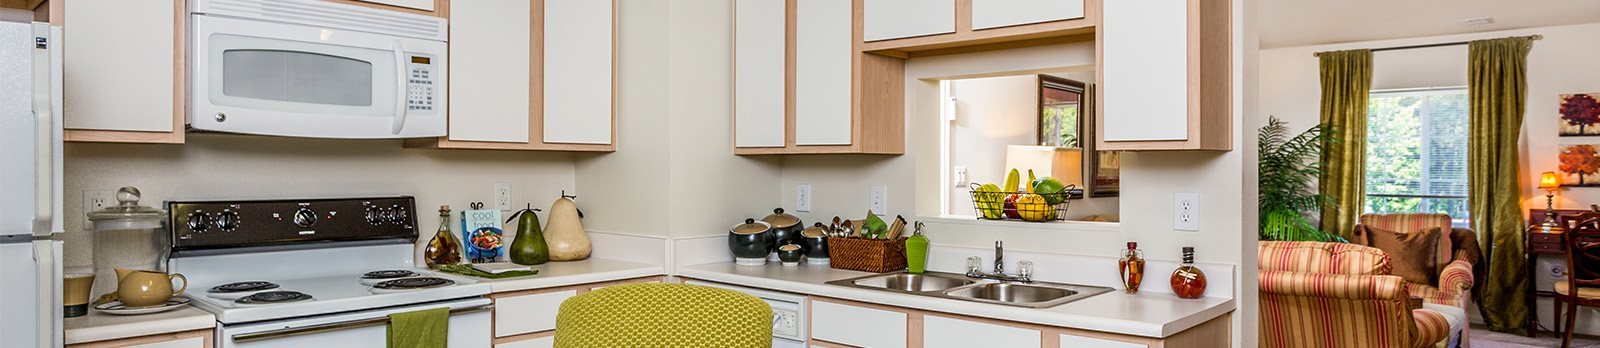 Built-In Microwaves at Featherstone Village Apartments, North Carolina